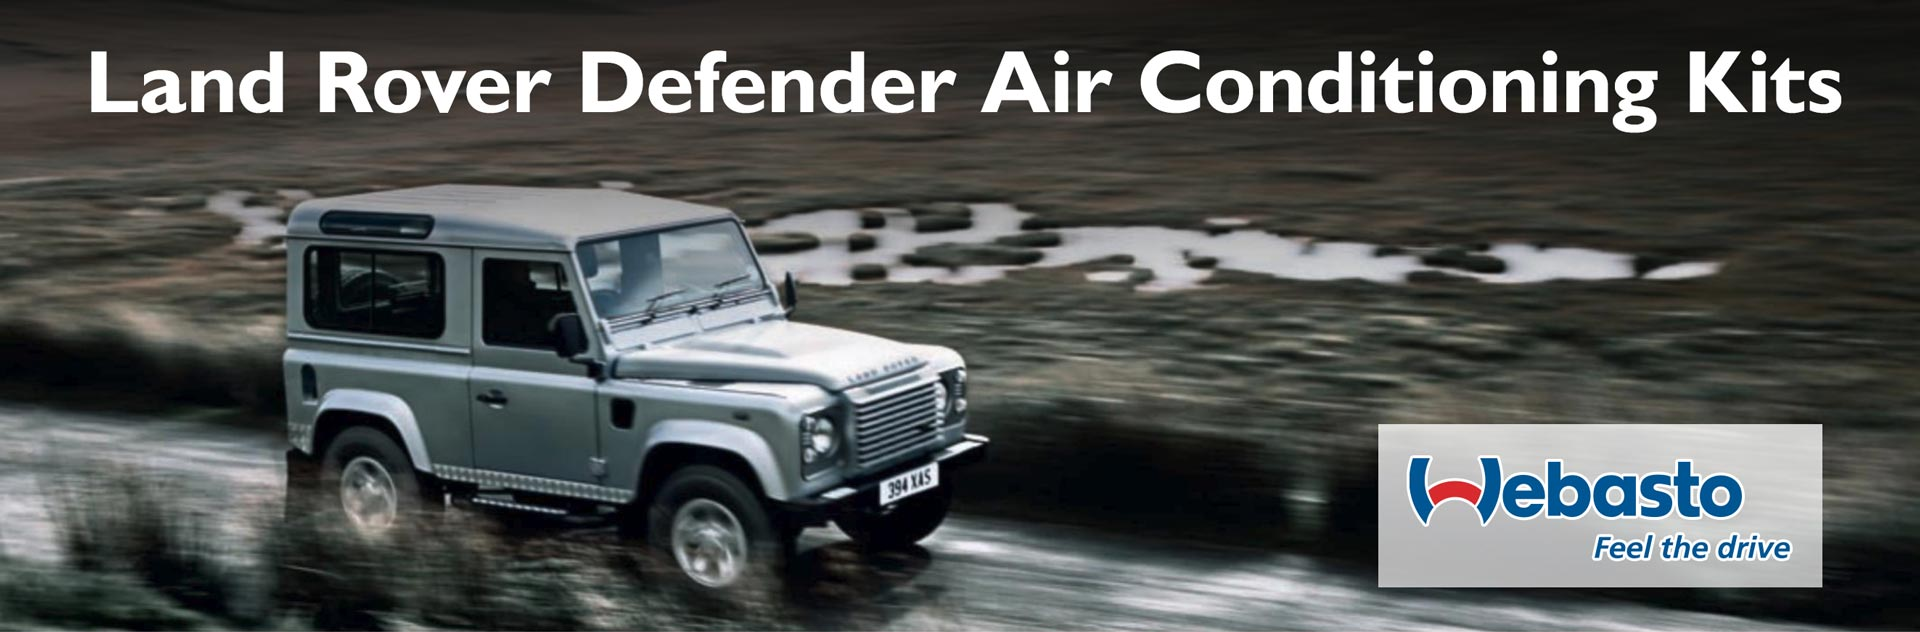 Land Rover Defender Air Conditioning AC System Kits by